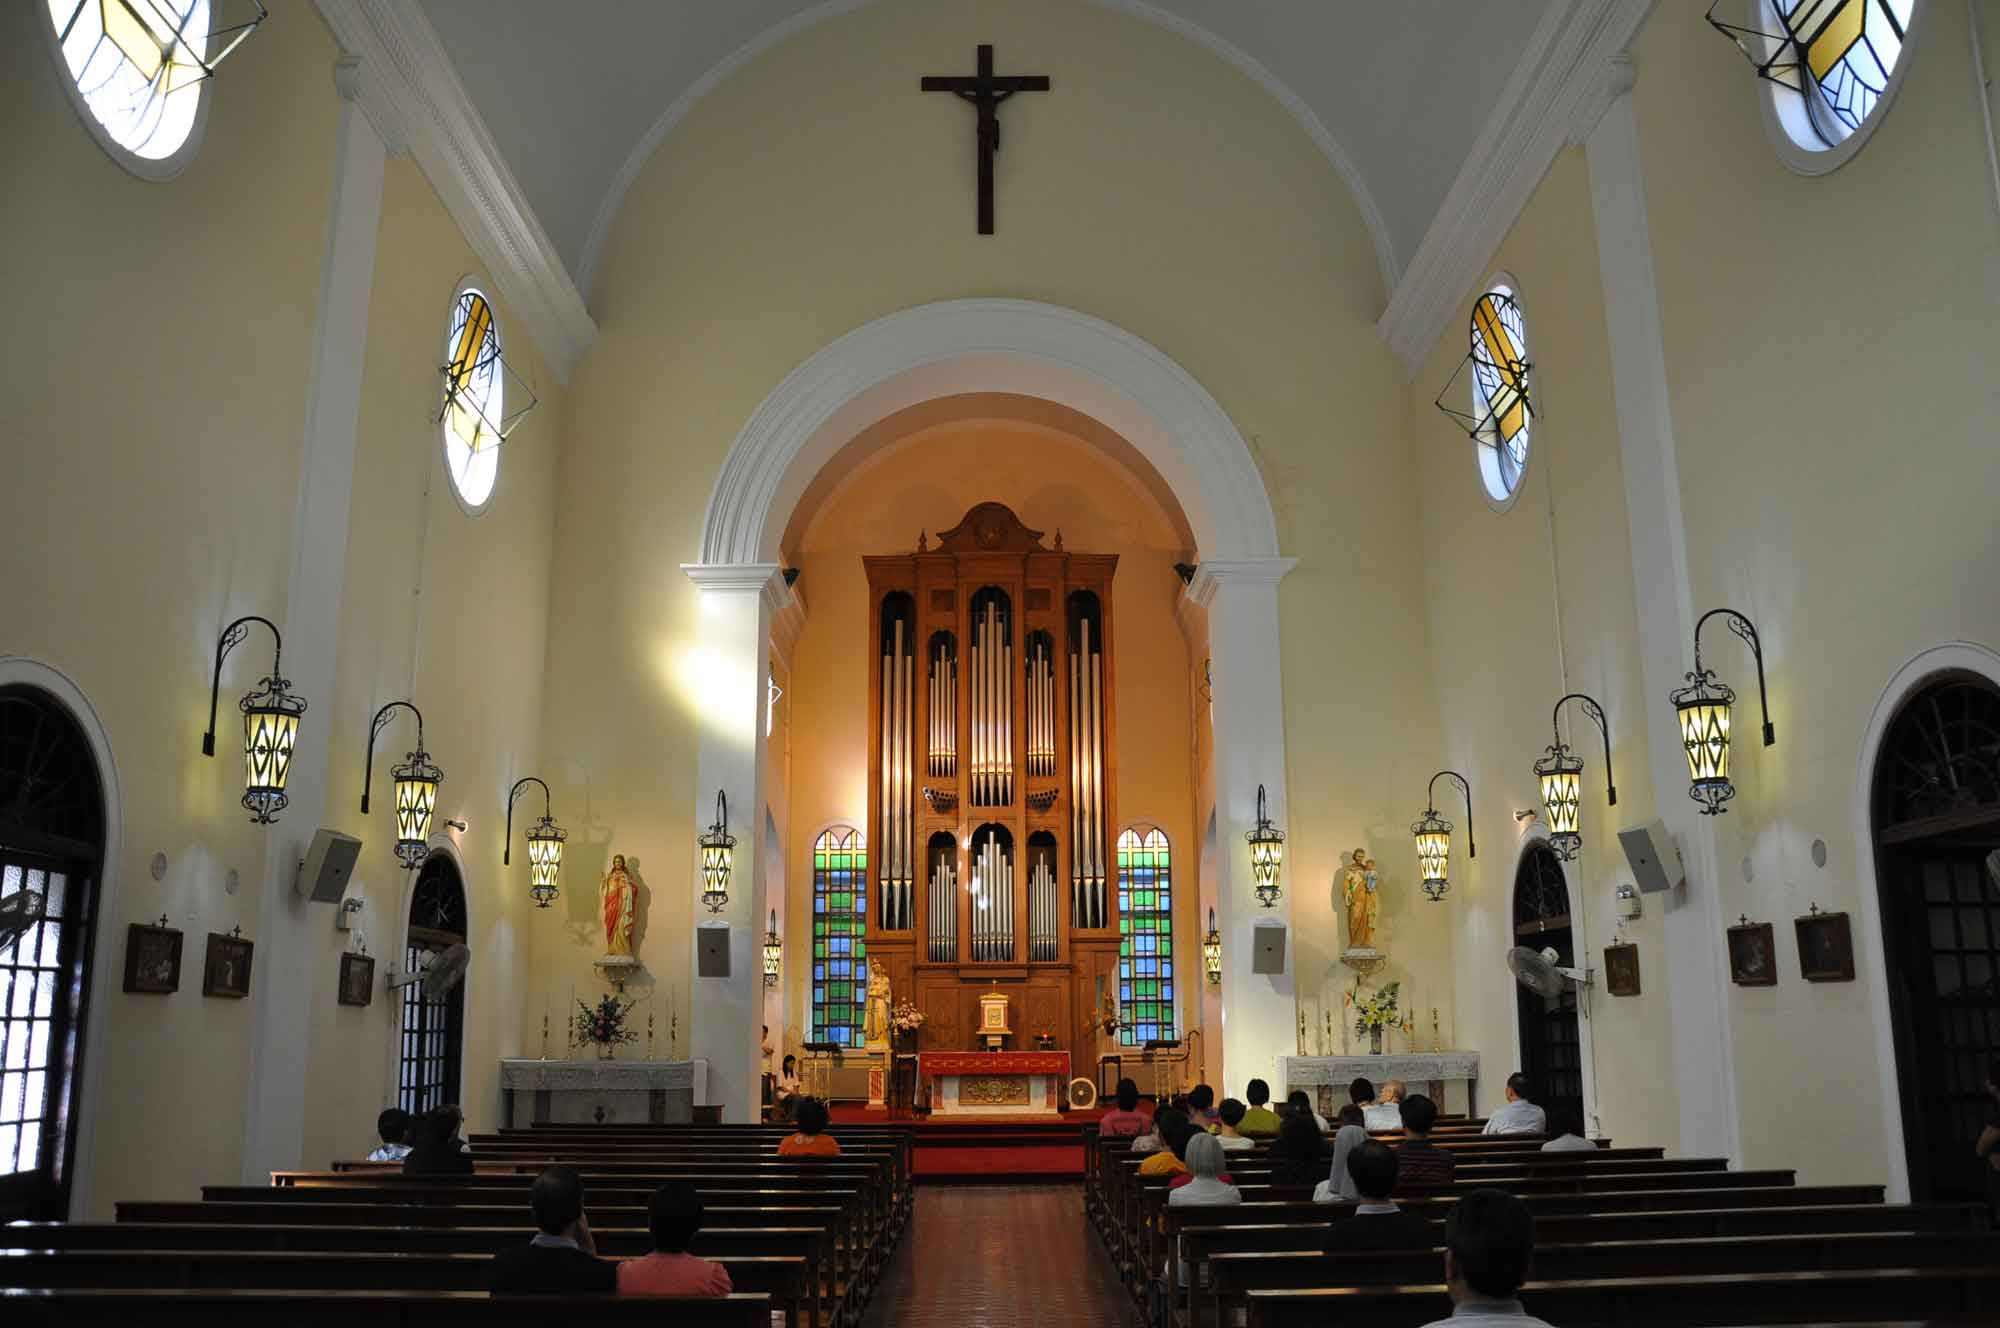 St. Lazarus Church interior